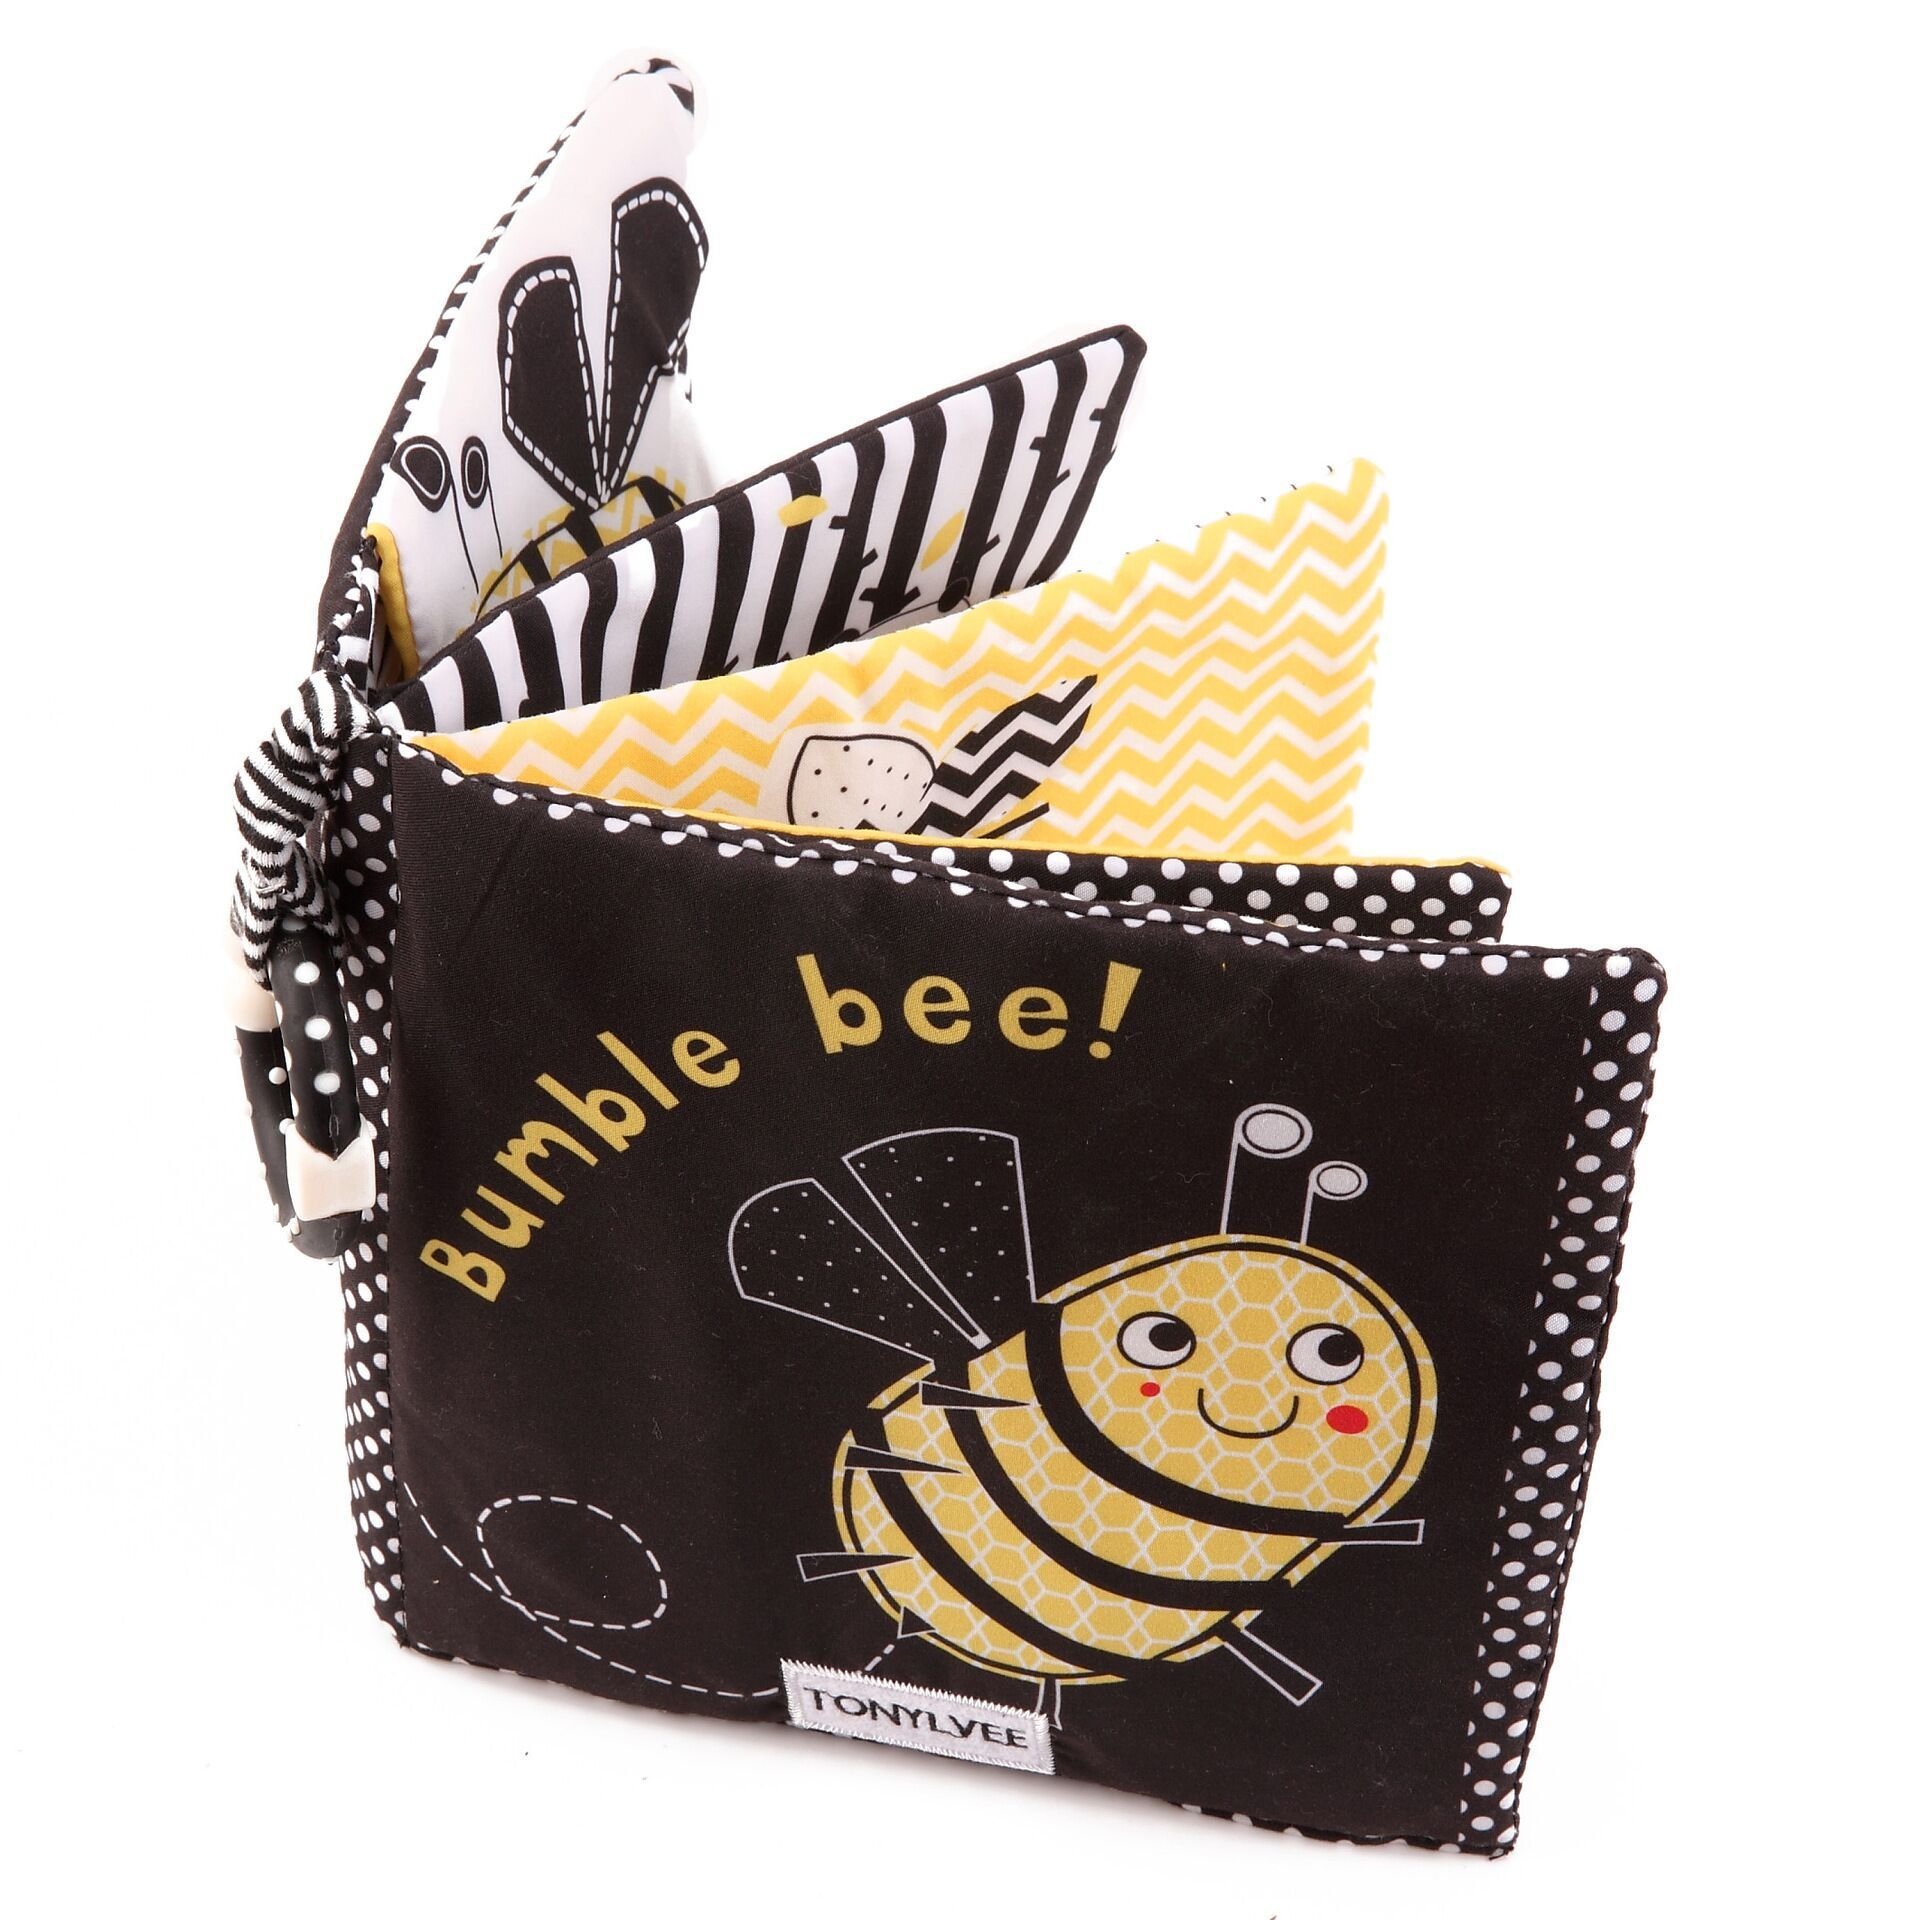 Hosim Baby's Soft Cloth Books Set - Baby Early Education Development Learning Toys, Fabric Cloth Colorful Activity Baby Book Infant Toddlers (Bumble Bee)